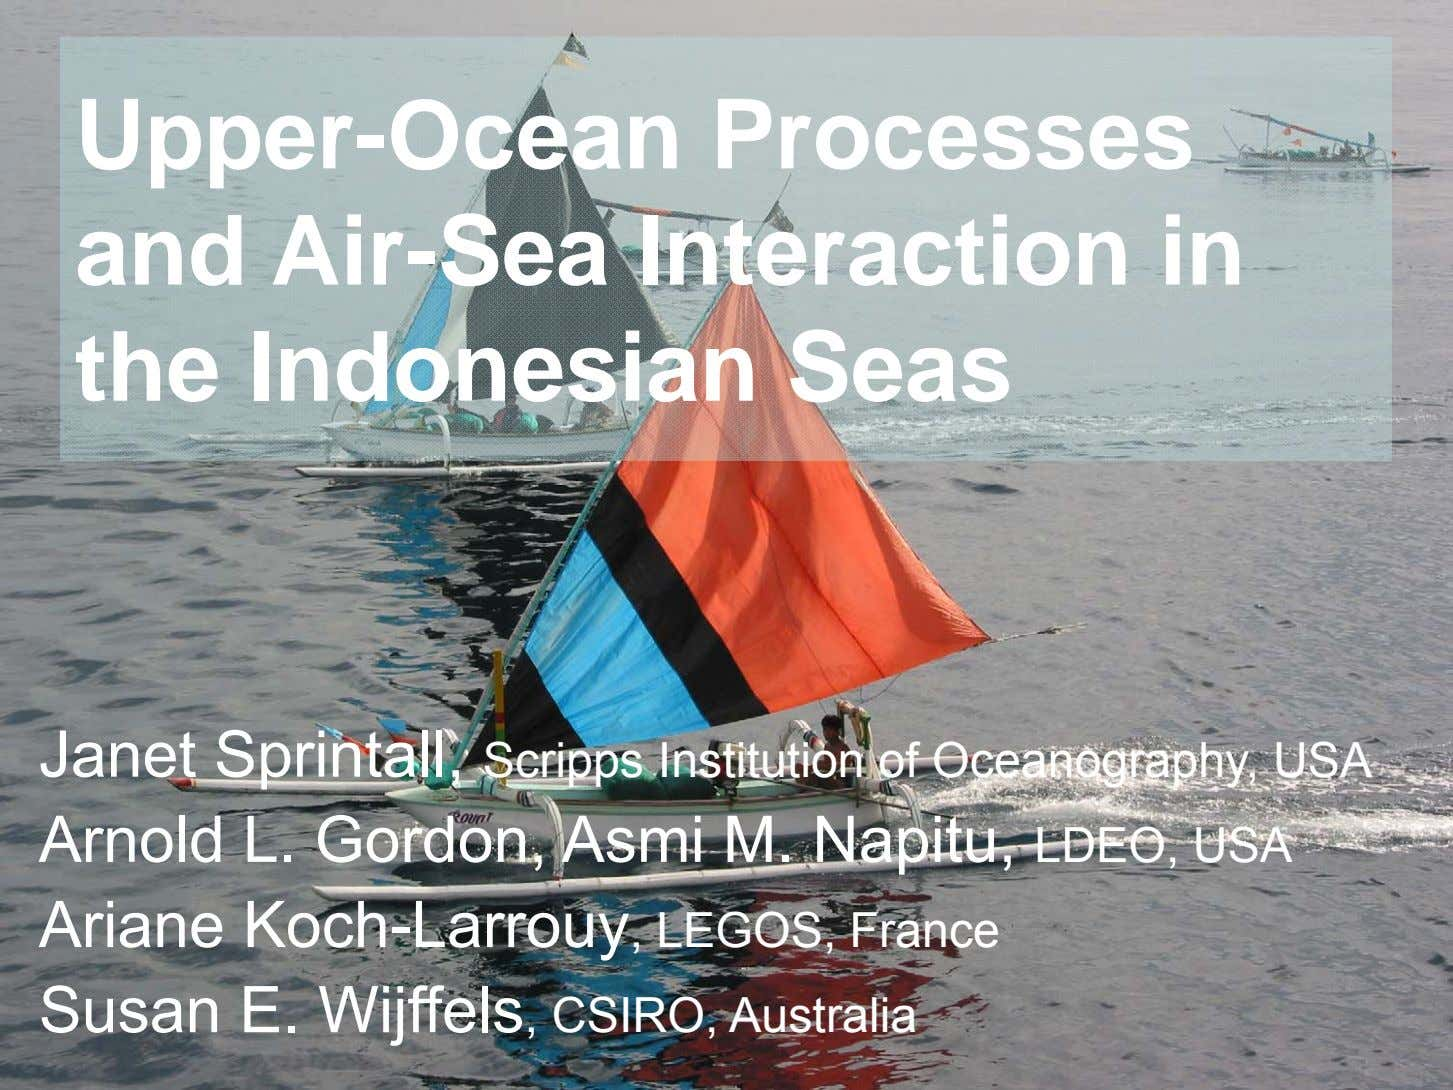 Upper-Ocean Processes and Air-Sea Interaction in the Indonesian Seas Janet Sprintall, Scripps Institution of